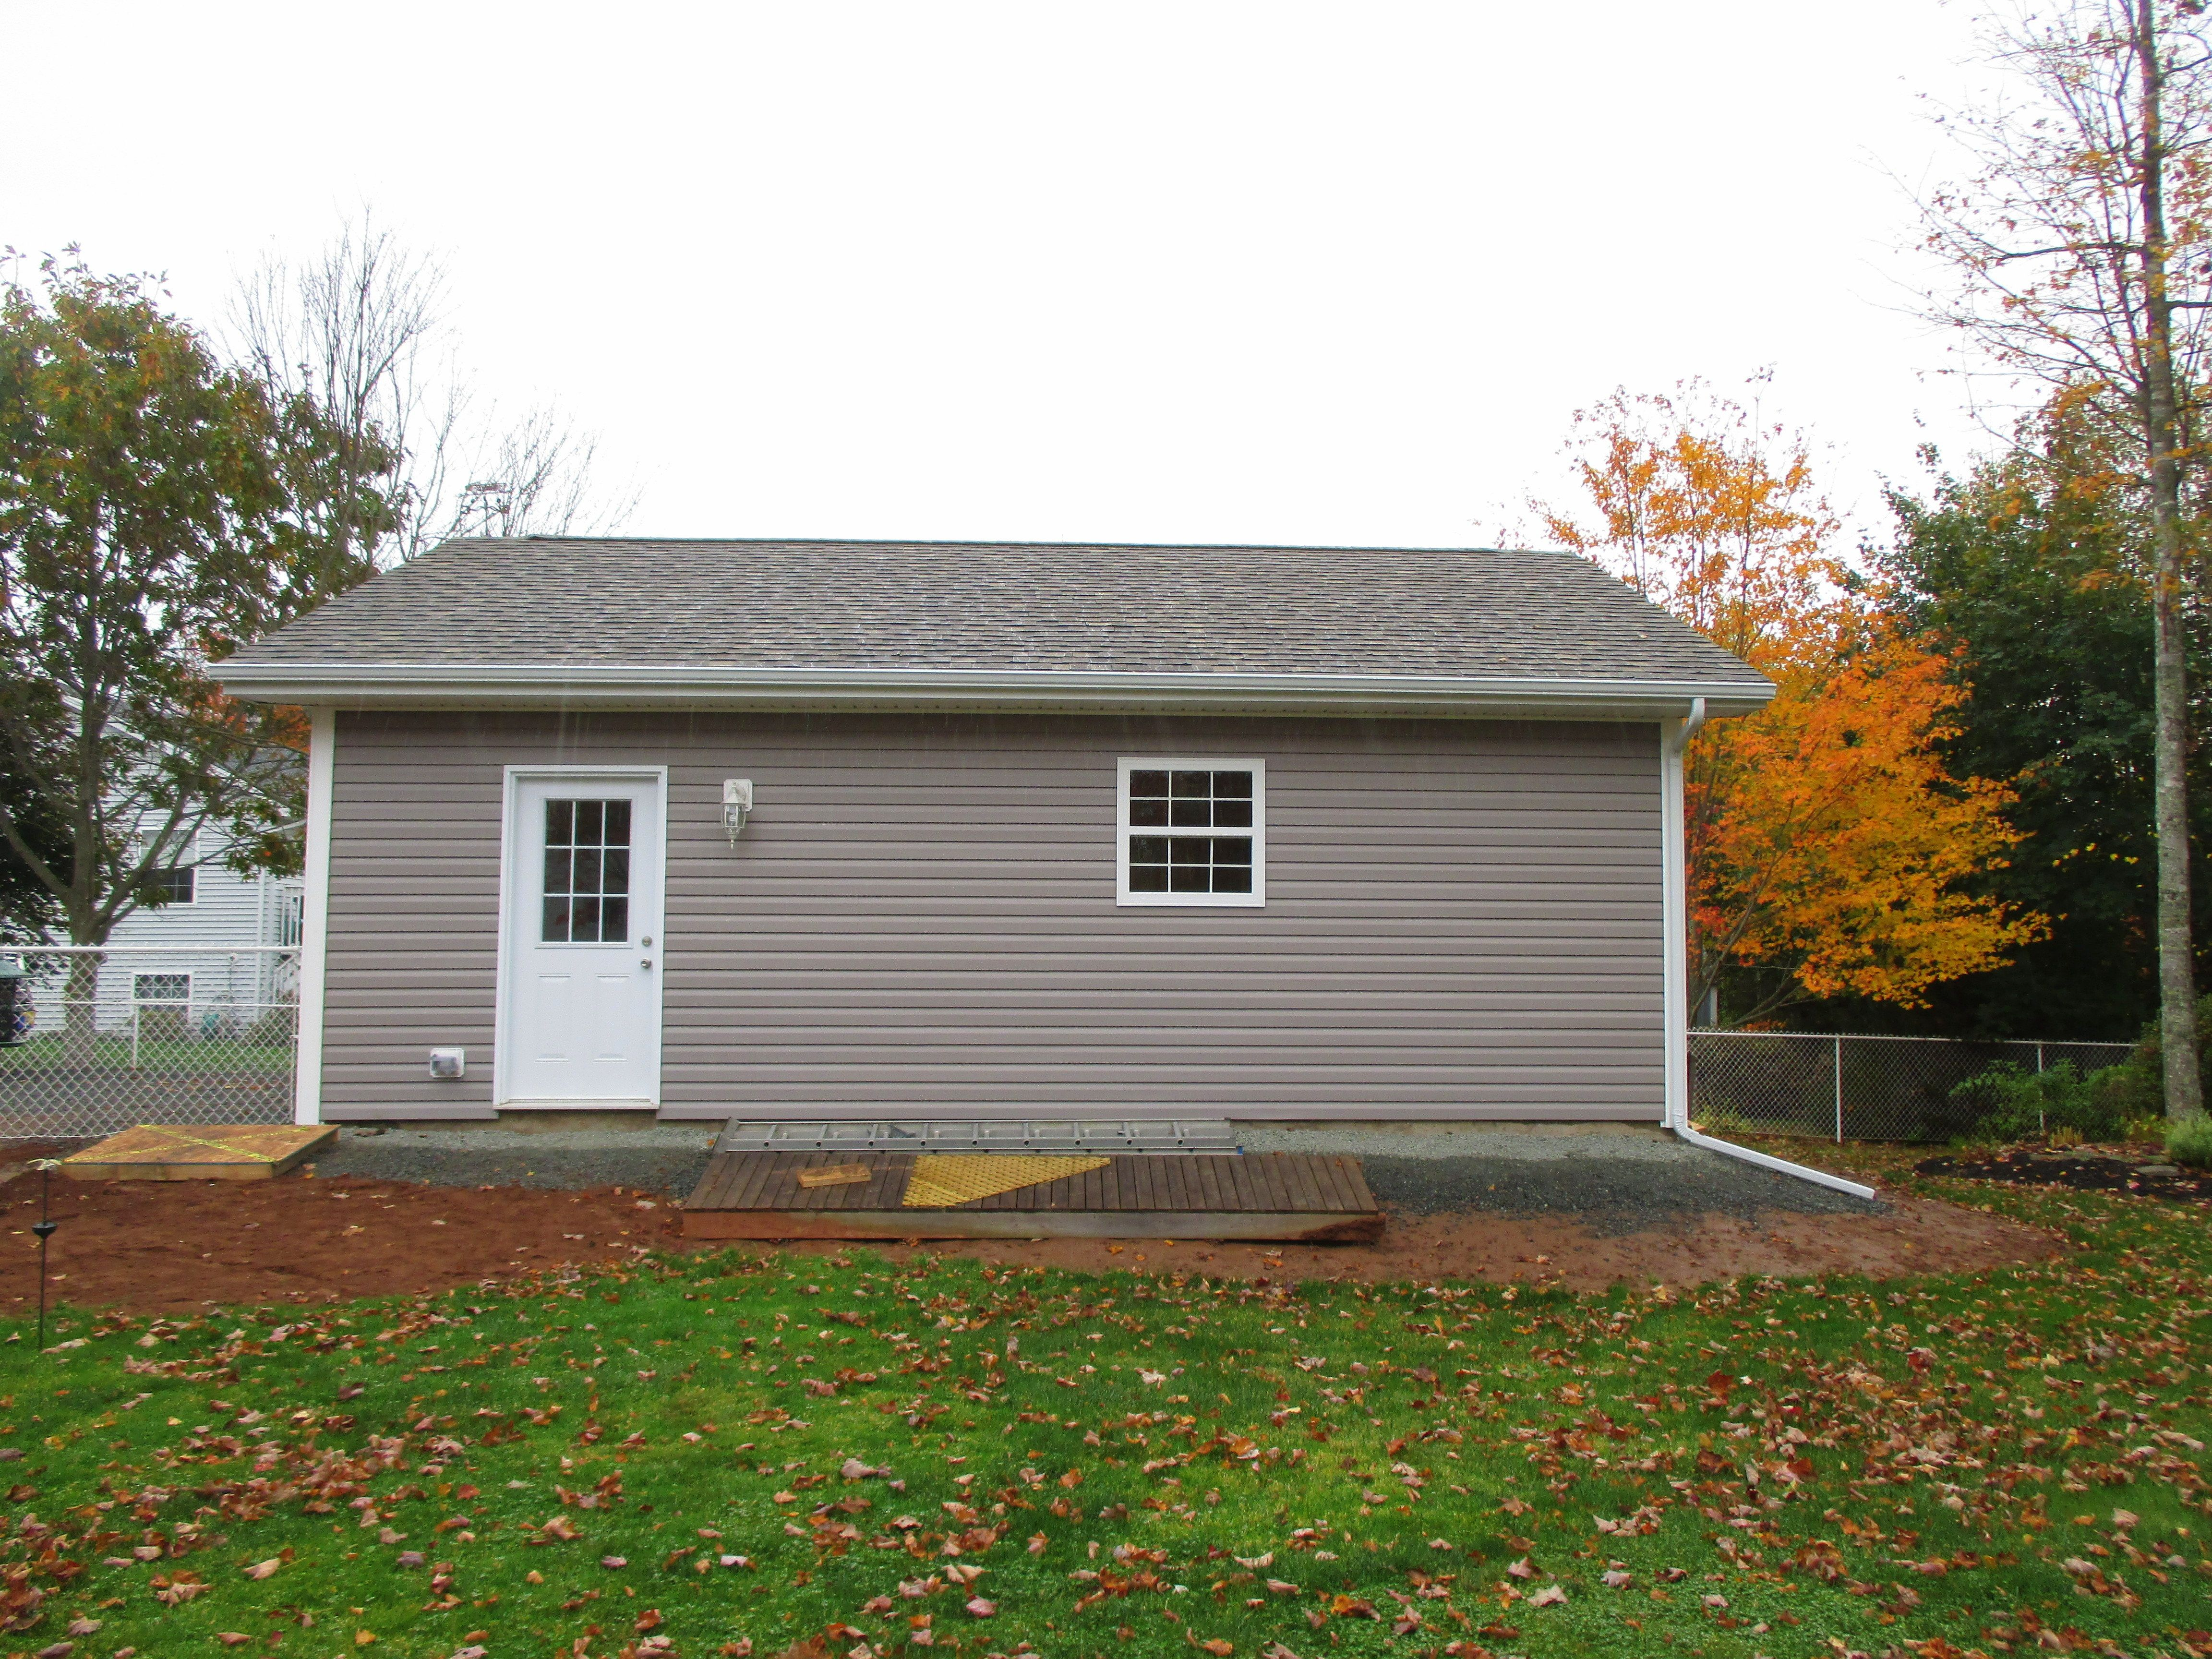 From Plans To Perfect Check Out Our Garage Styles And Options Material Provided By Hubcraft Timber Mart Garage Style Garage Plans Outdoor Structures